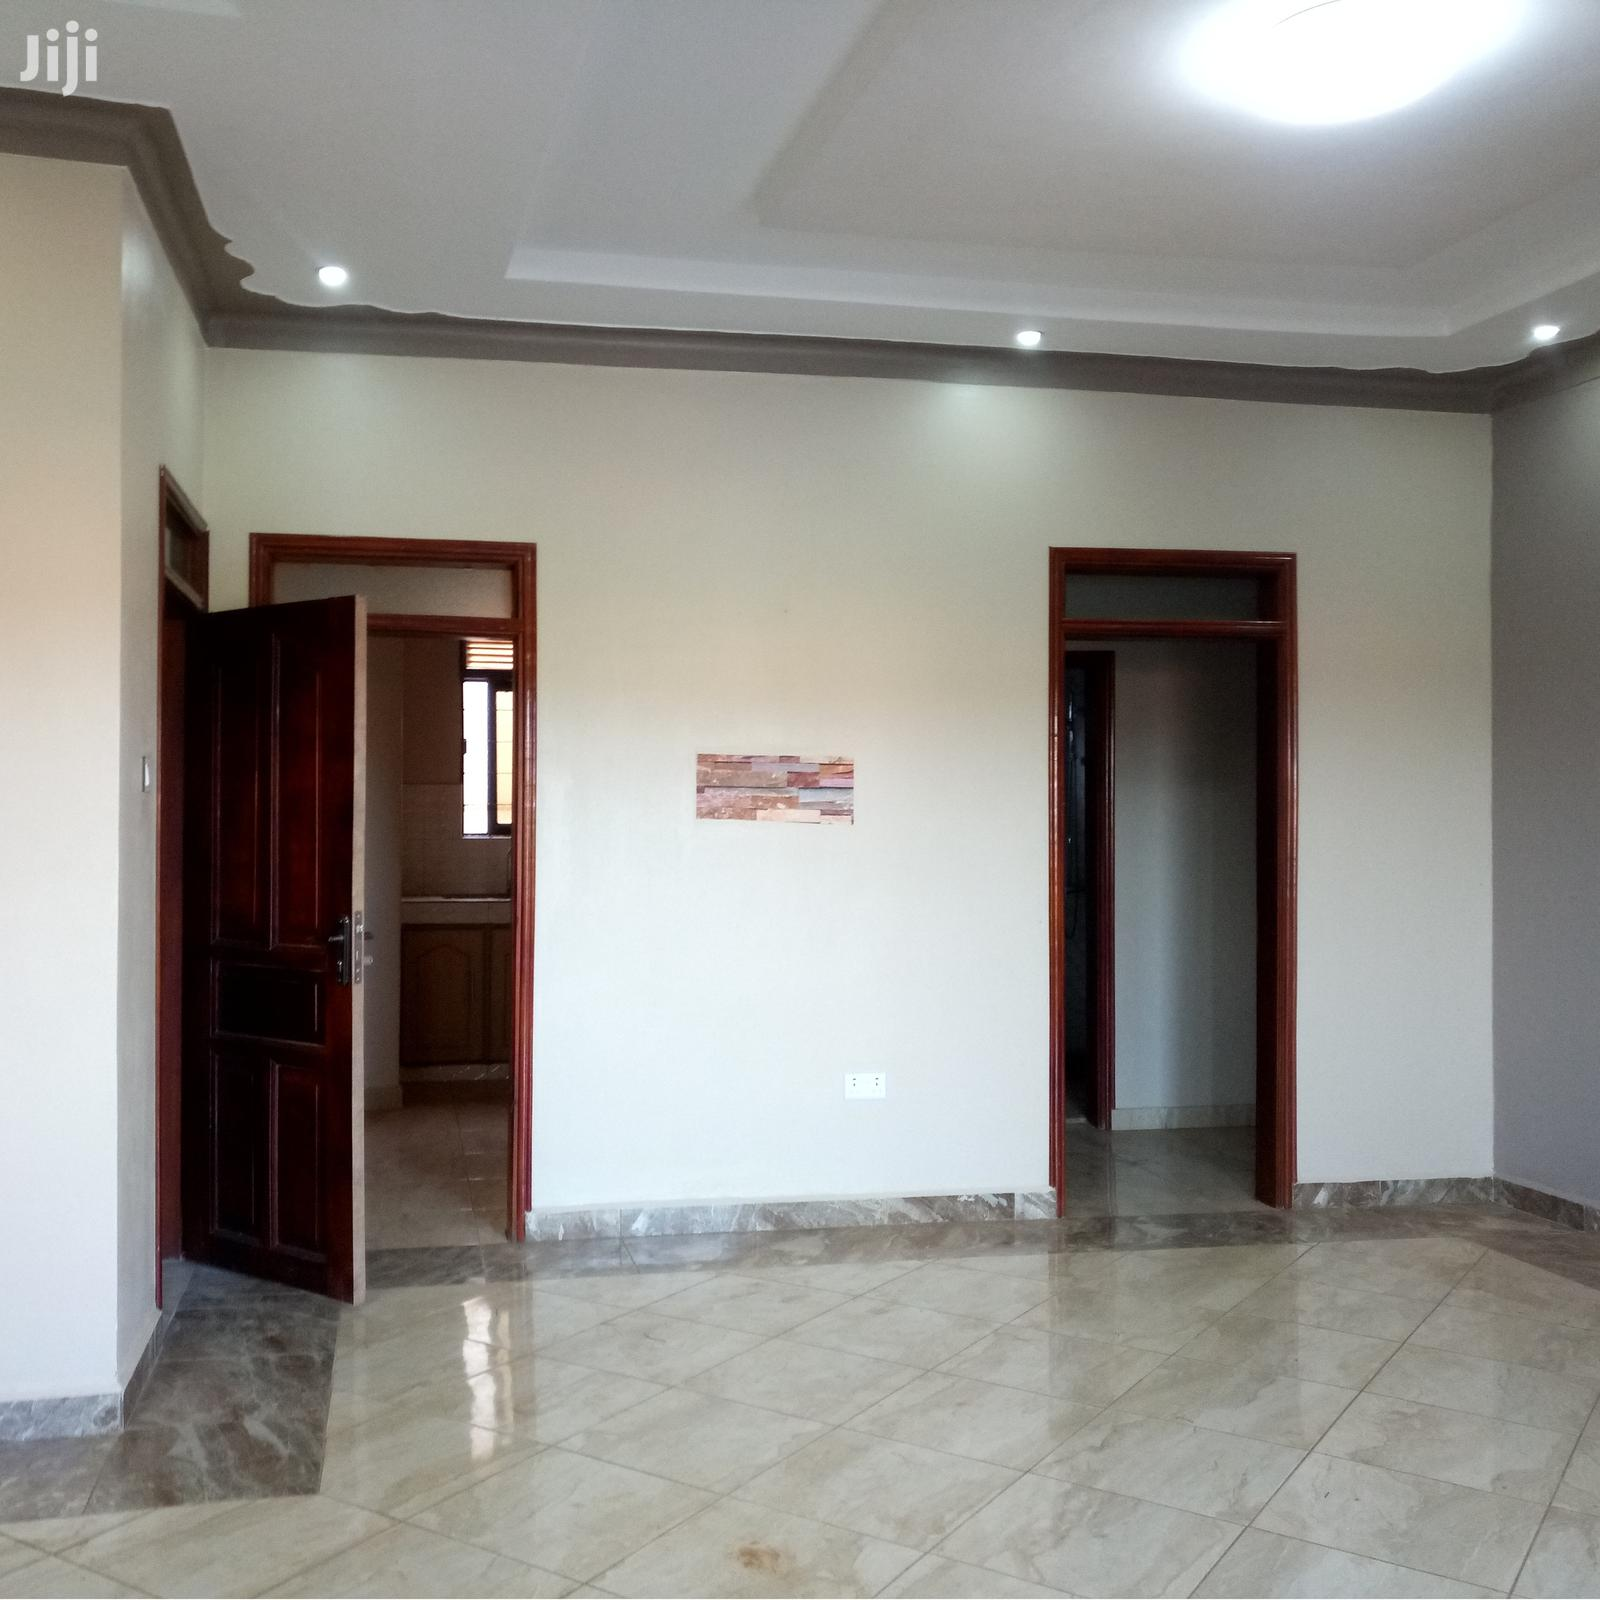 Kireka Namugongo Road Two Bedroom Two Toilets House For Rent | Houses & Apartments For Rent for sale in Kampala, Central Region, Uganda